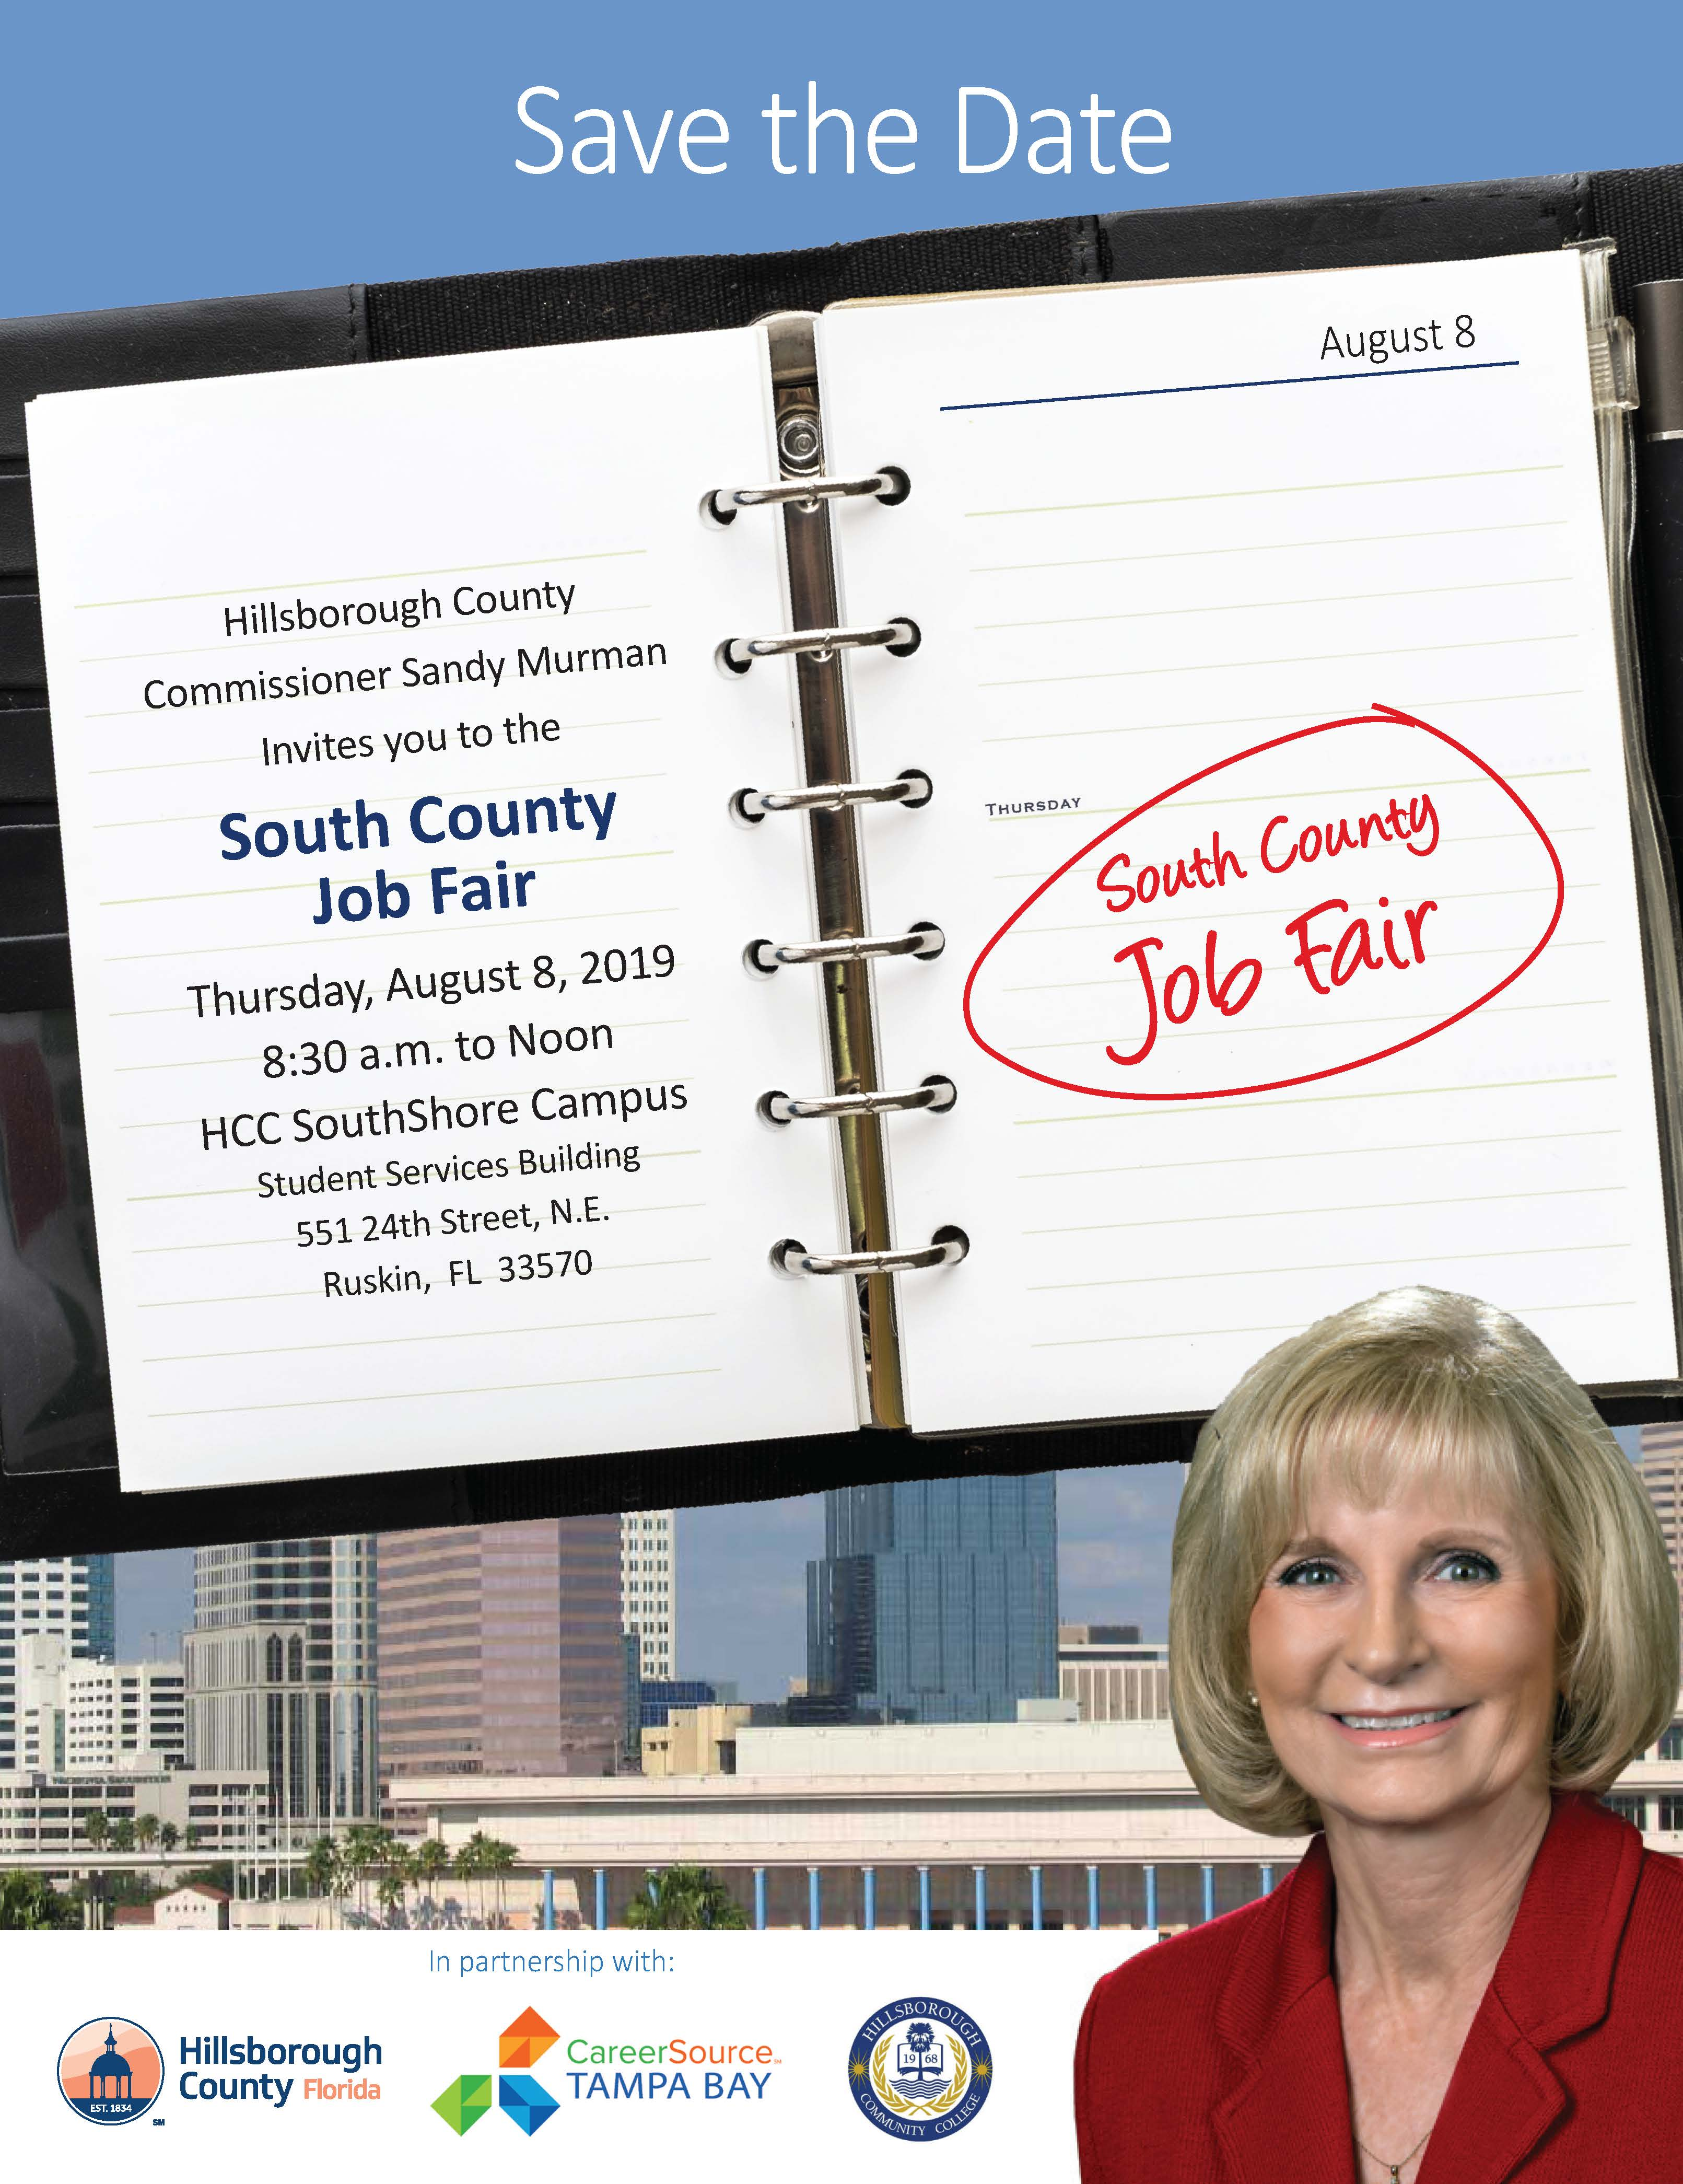 South County Job Fair in Ruskin @ HCC SouthShore Campus